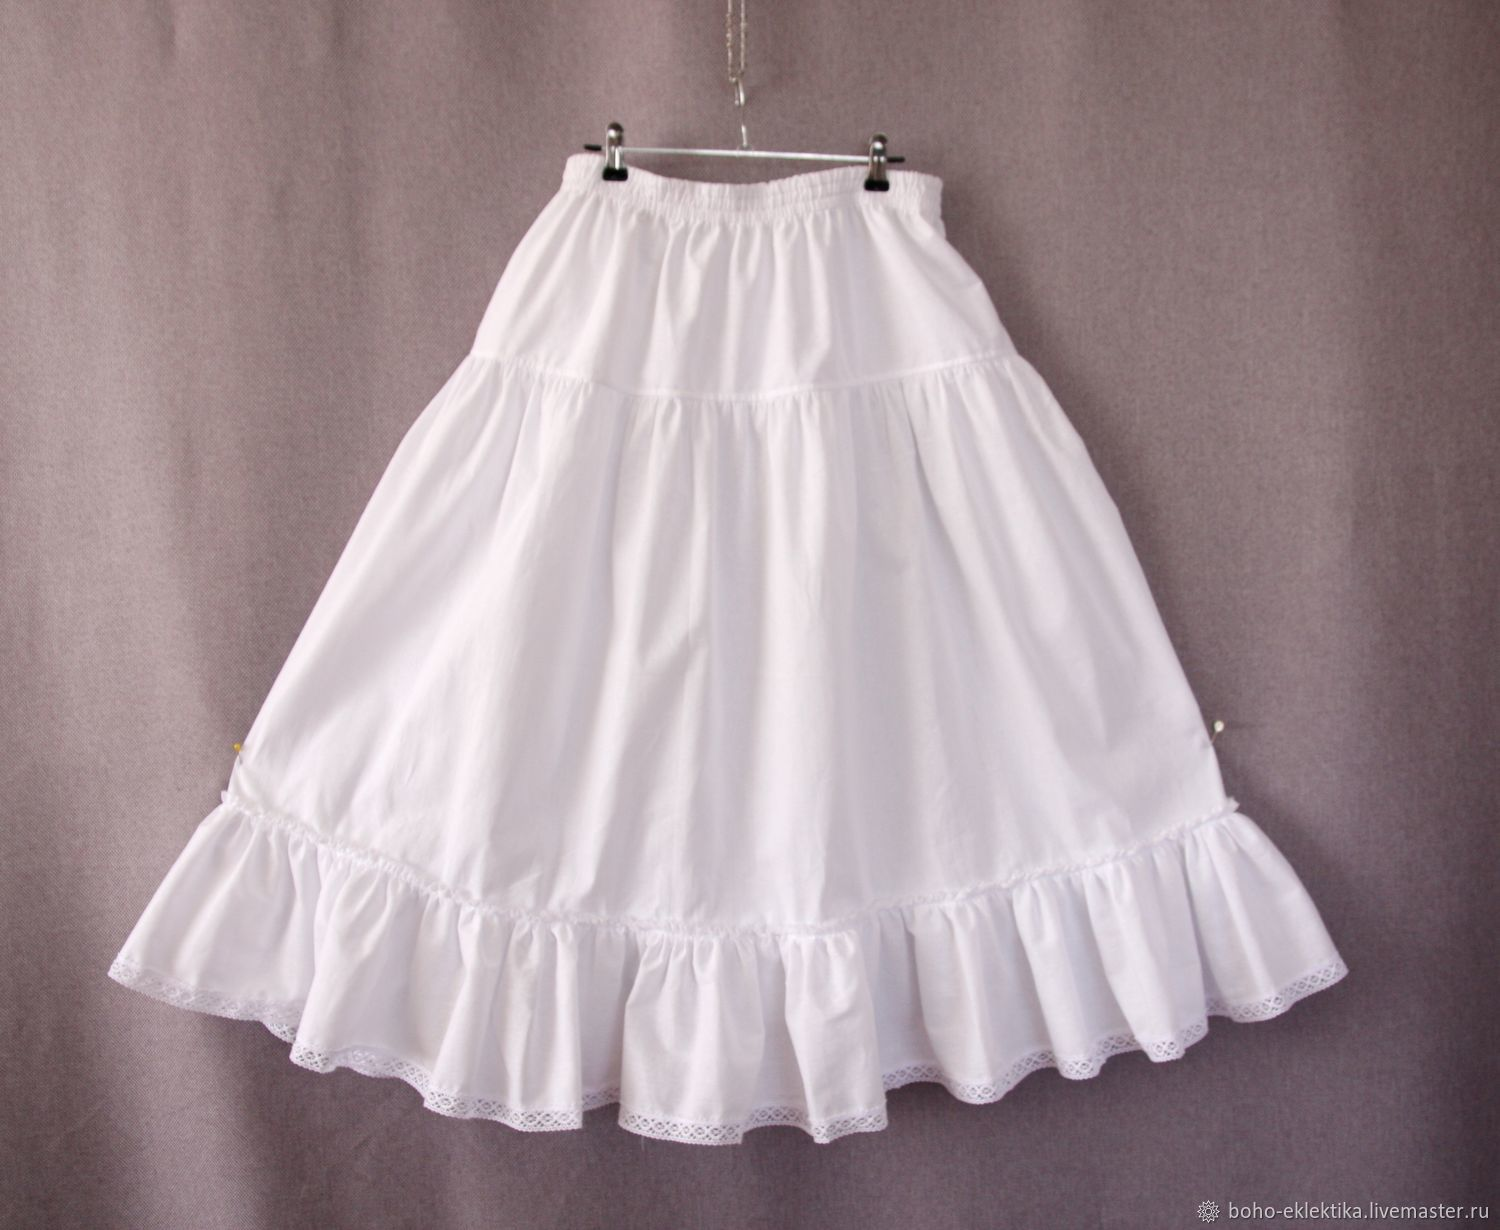 Lower long skirt lace trims skirt tiers, Skirts, Tomsk,  Фото №1